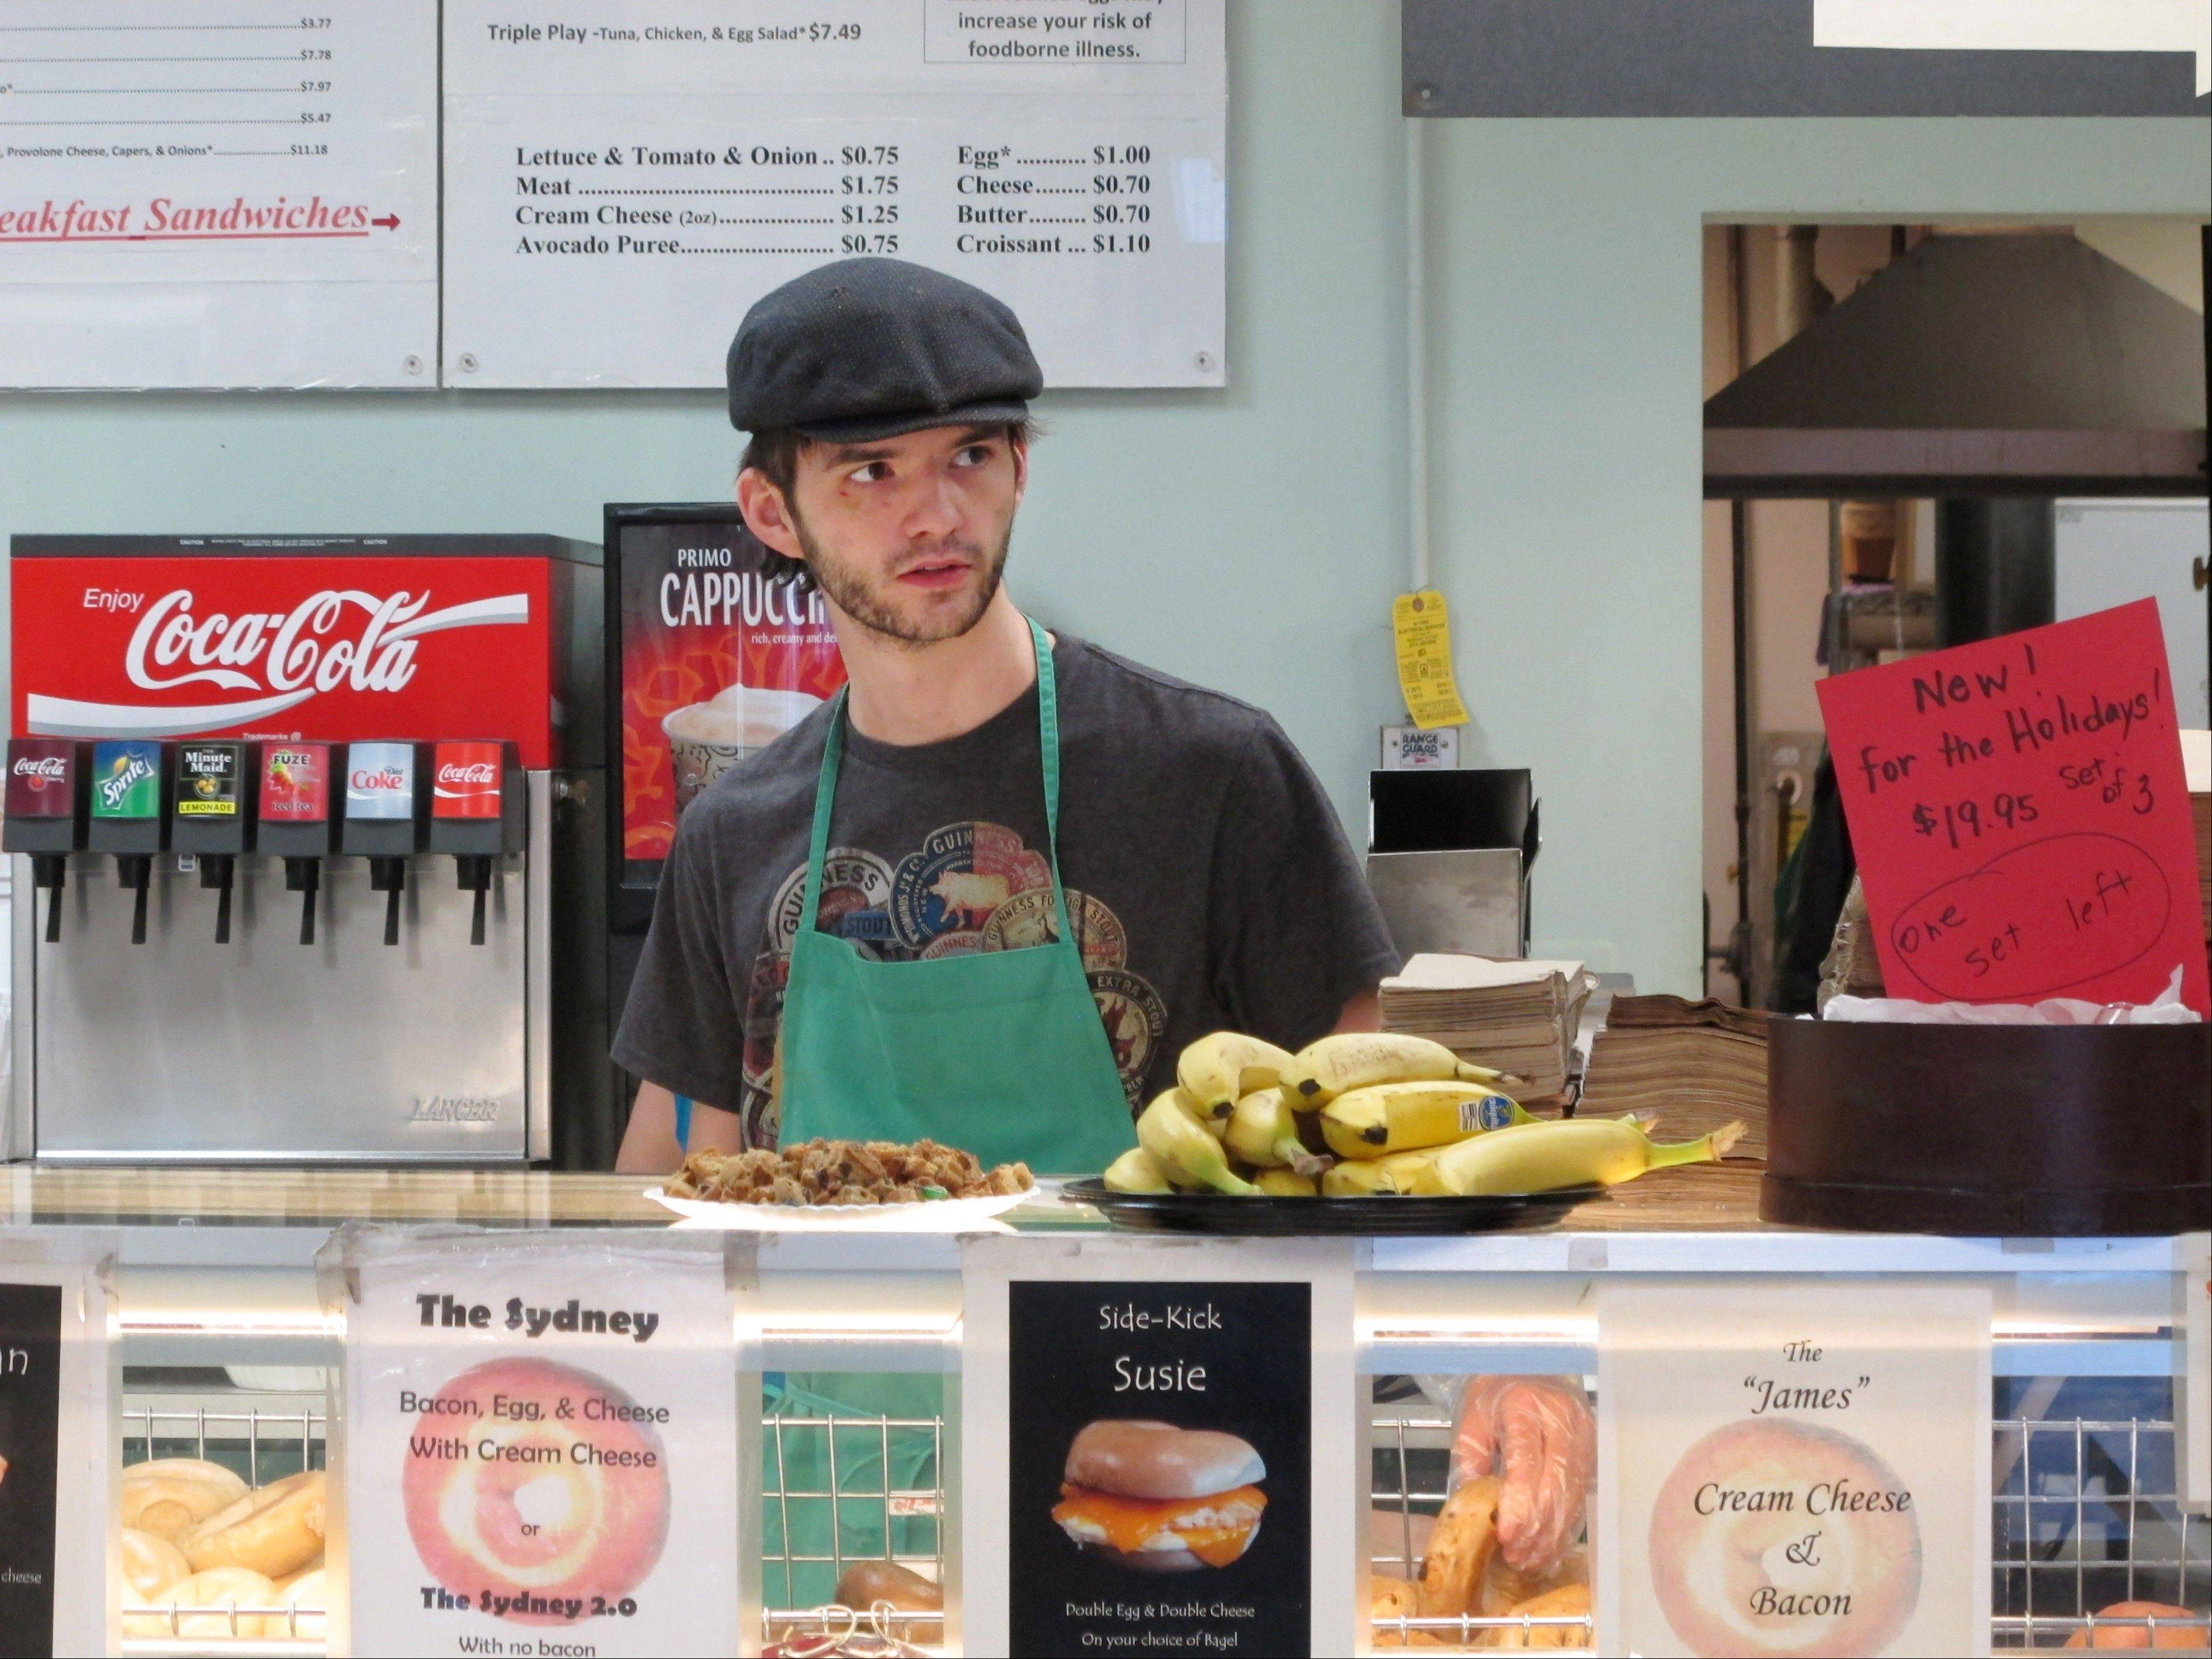 Neal Breen, 21, works Monday at the Ashburn Bagel & Sandwich Shop in Ashburn, Va. Breen, who quit college a year earlier with hopes of saving money to start his own business, is keenly aware that the wealth in the neighborhoods where he delivers breakfast sandwiches is, for now, beyond reach.